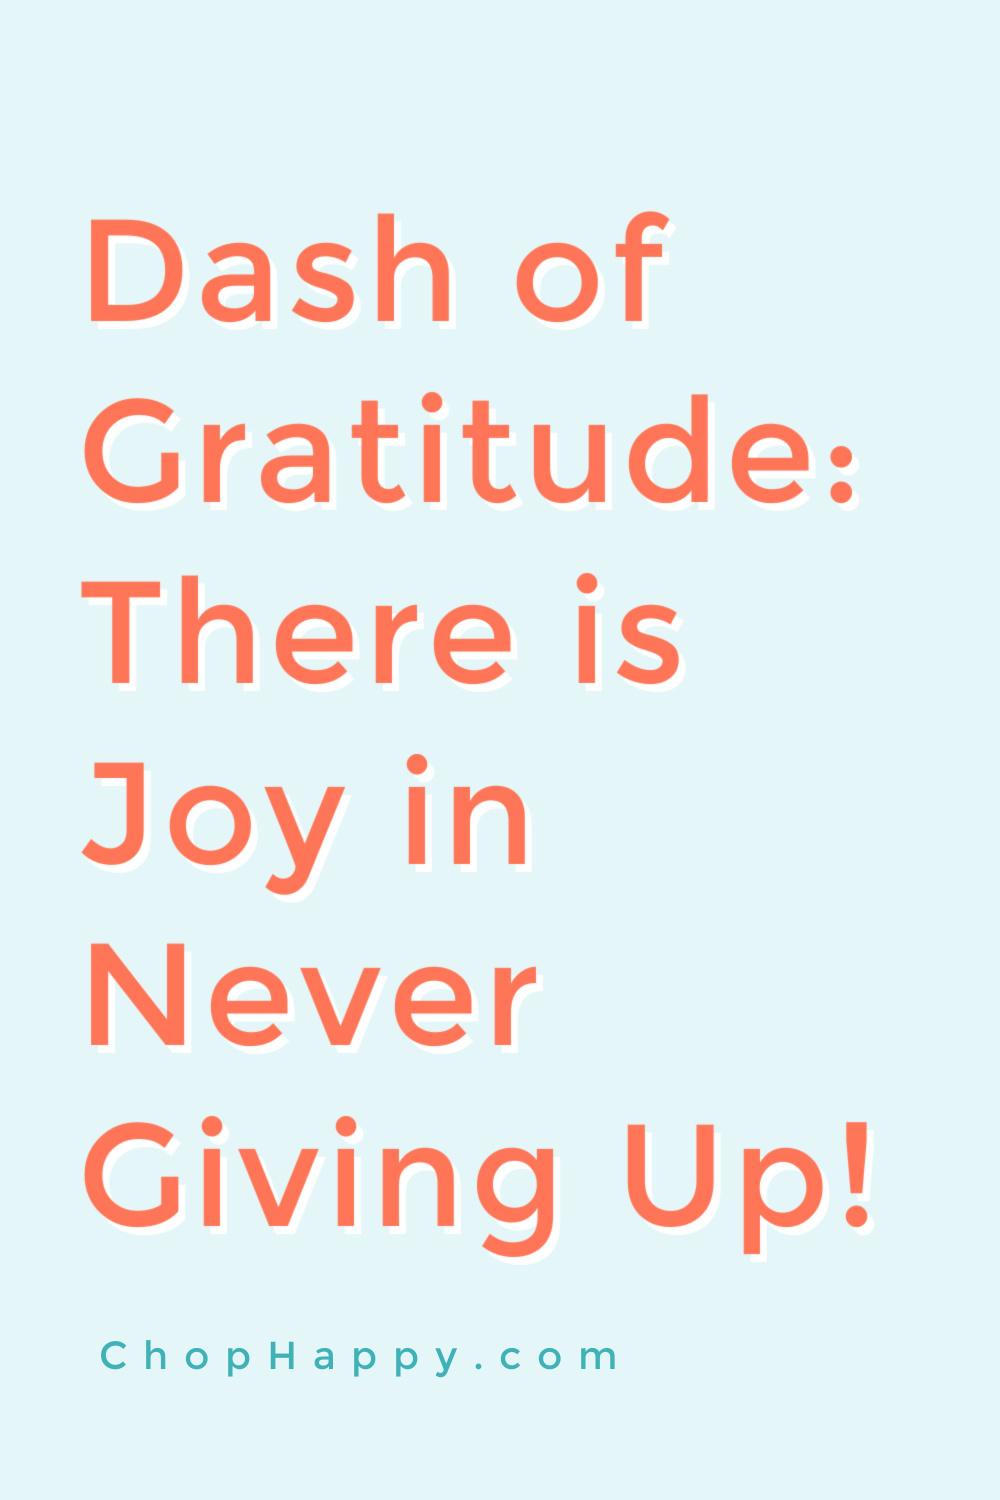 Dash of Gratitude: There is Joy in Never Giving Up! This is a self help video about finding joy, your dreams, love, and purpose with in. Happy Today! www.ChopHappy.com #joy #findingyourself